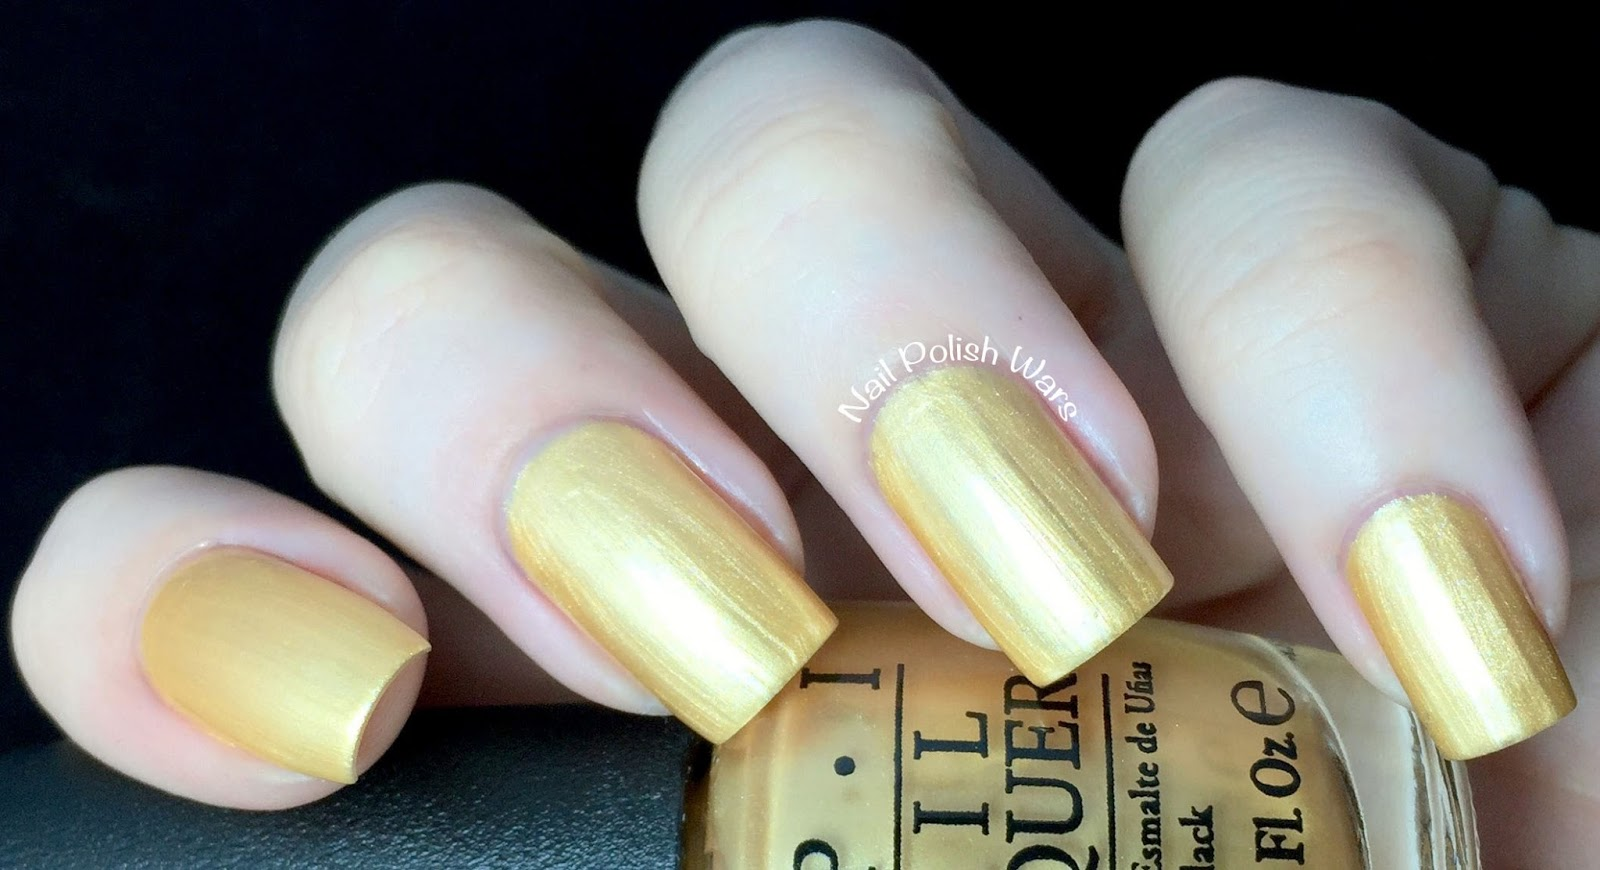 OPI Holiday 2014 - Rollin' in Cashmere Trio